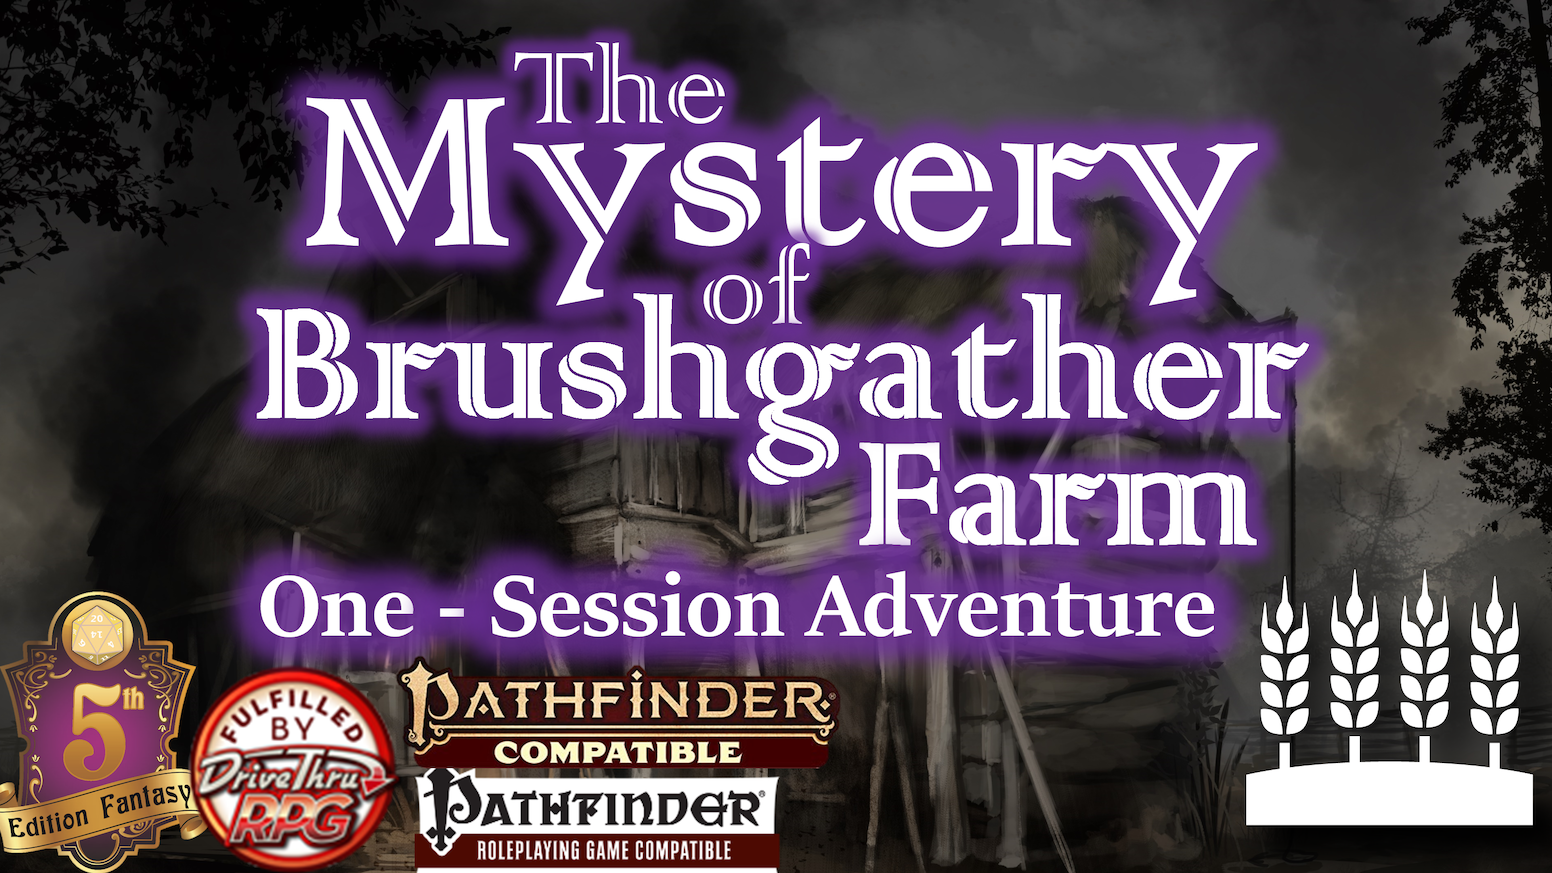 A chilling one-session adventure featuring a haunted farmhouse and caverns underneath.  For Pathfinder 1/P2E and 5E/Fifth Edition.